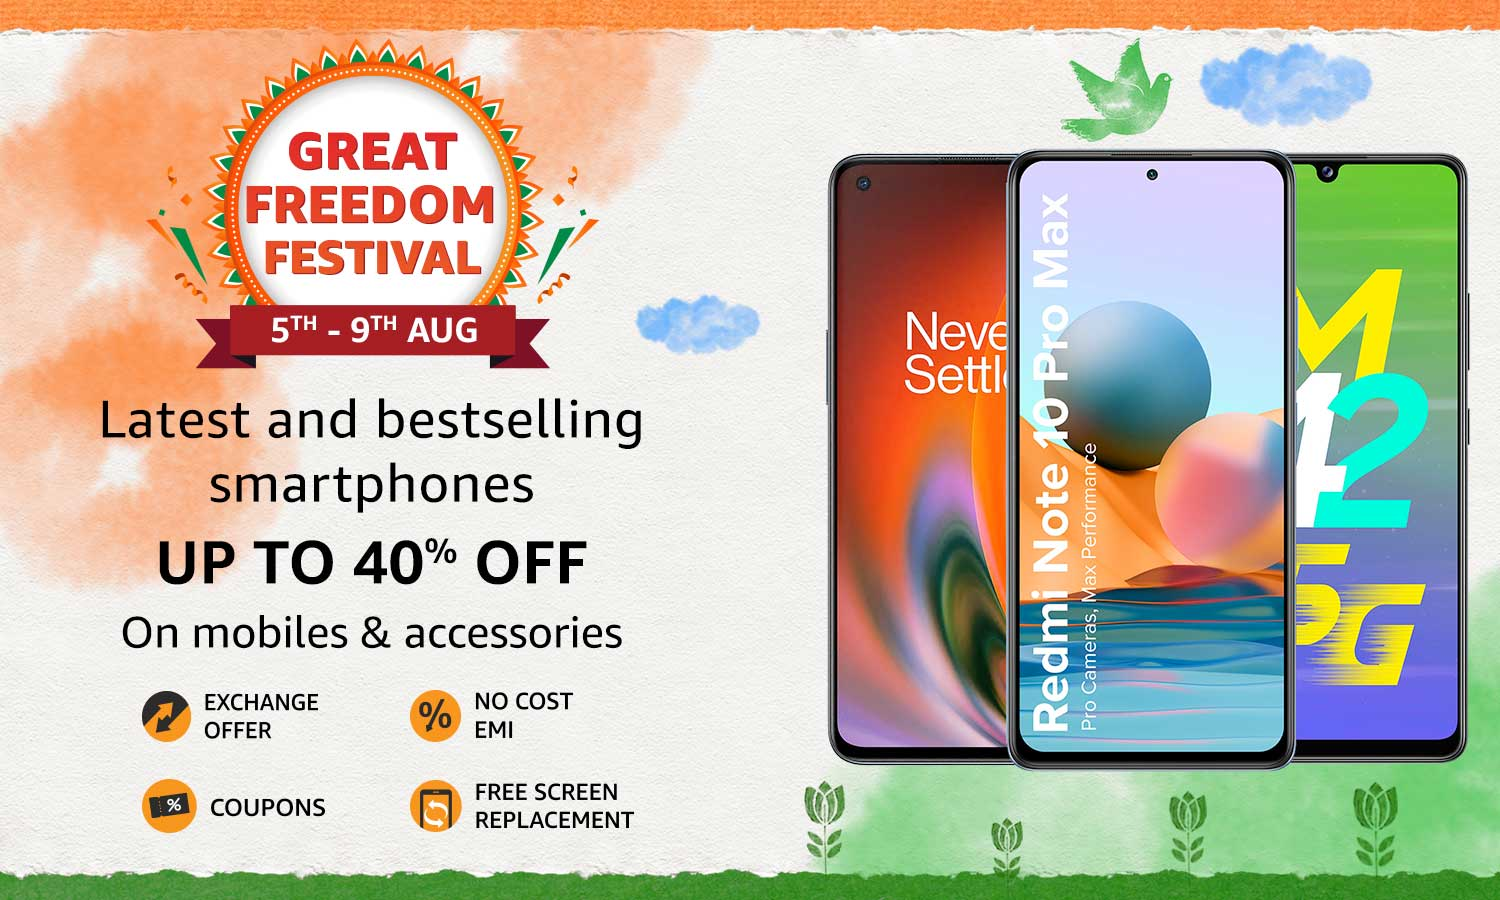 Up to 40% OFF on Latest & Best Selling Smartphones